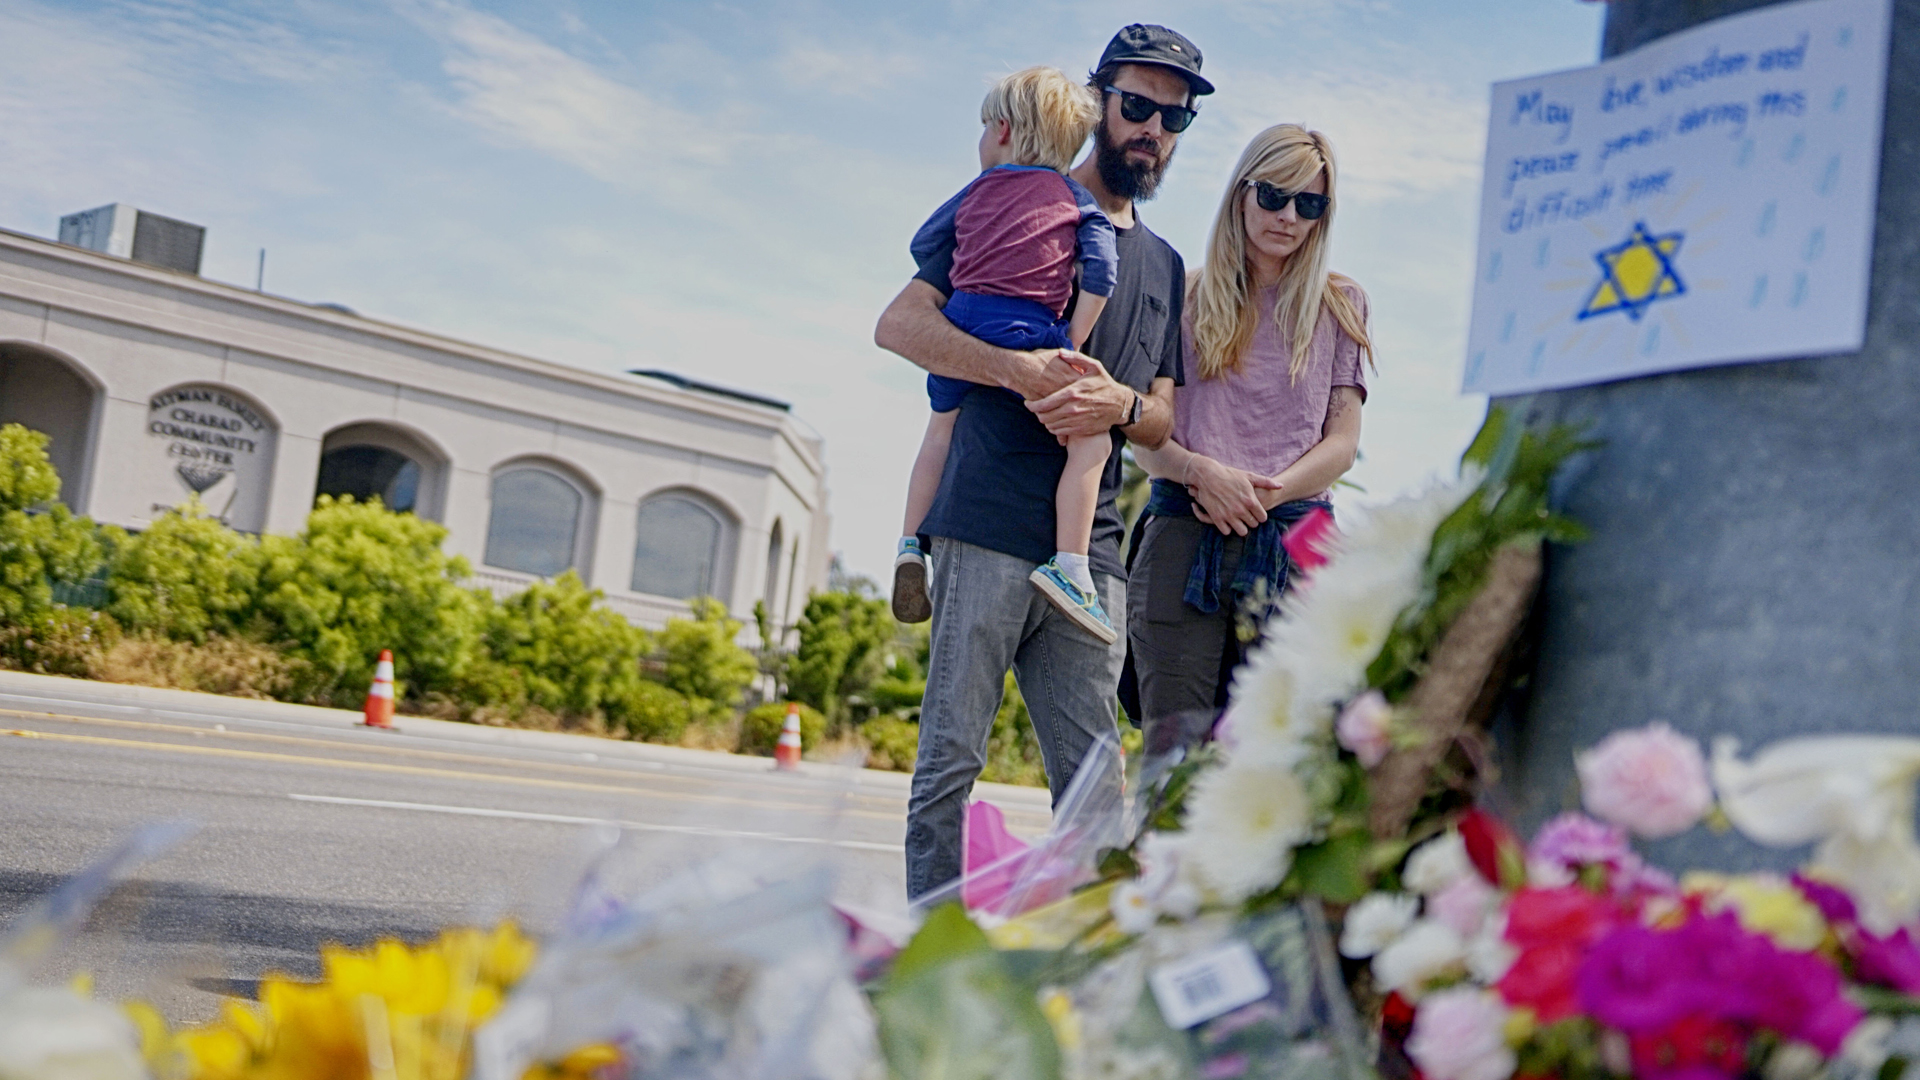 Mourners look over a make-shift memorial across the street from the Chabad of Poway Synagogue on April 28, 2019, in Poway, California.(Credit: Sandy Huffaker/AFP/Getty Images)